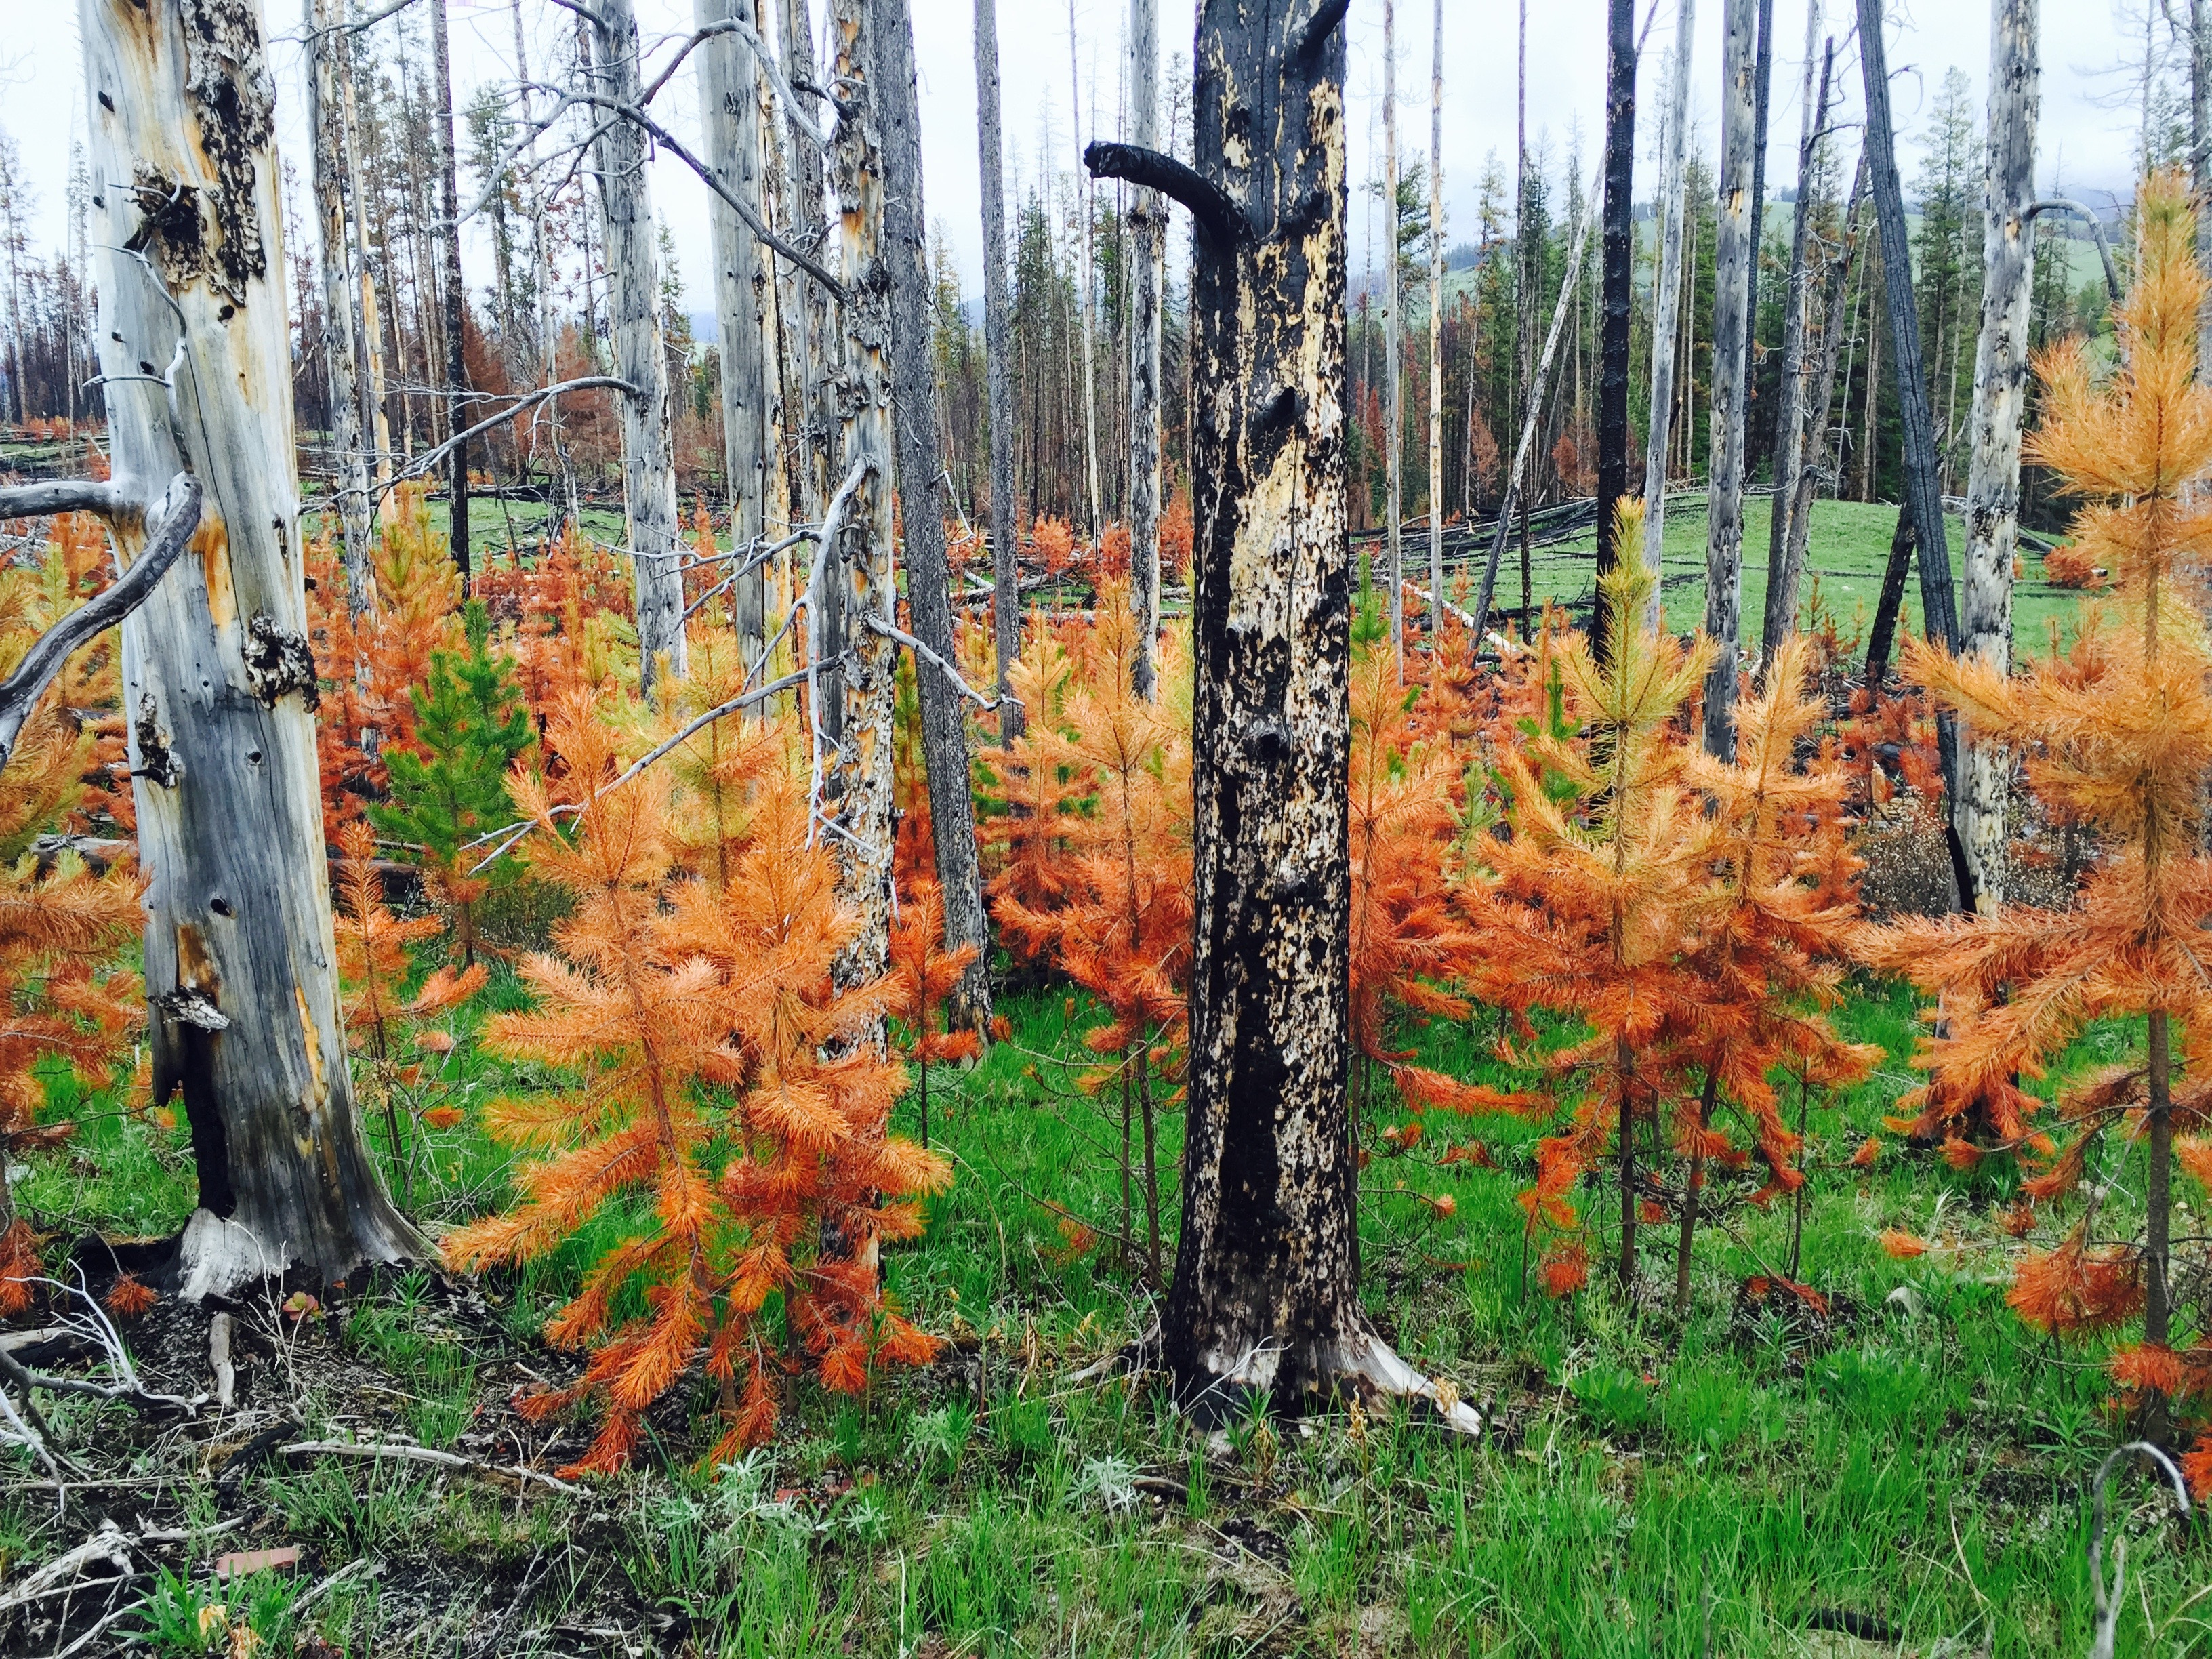 Fire Ecology in the North Fork of the Sun